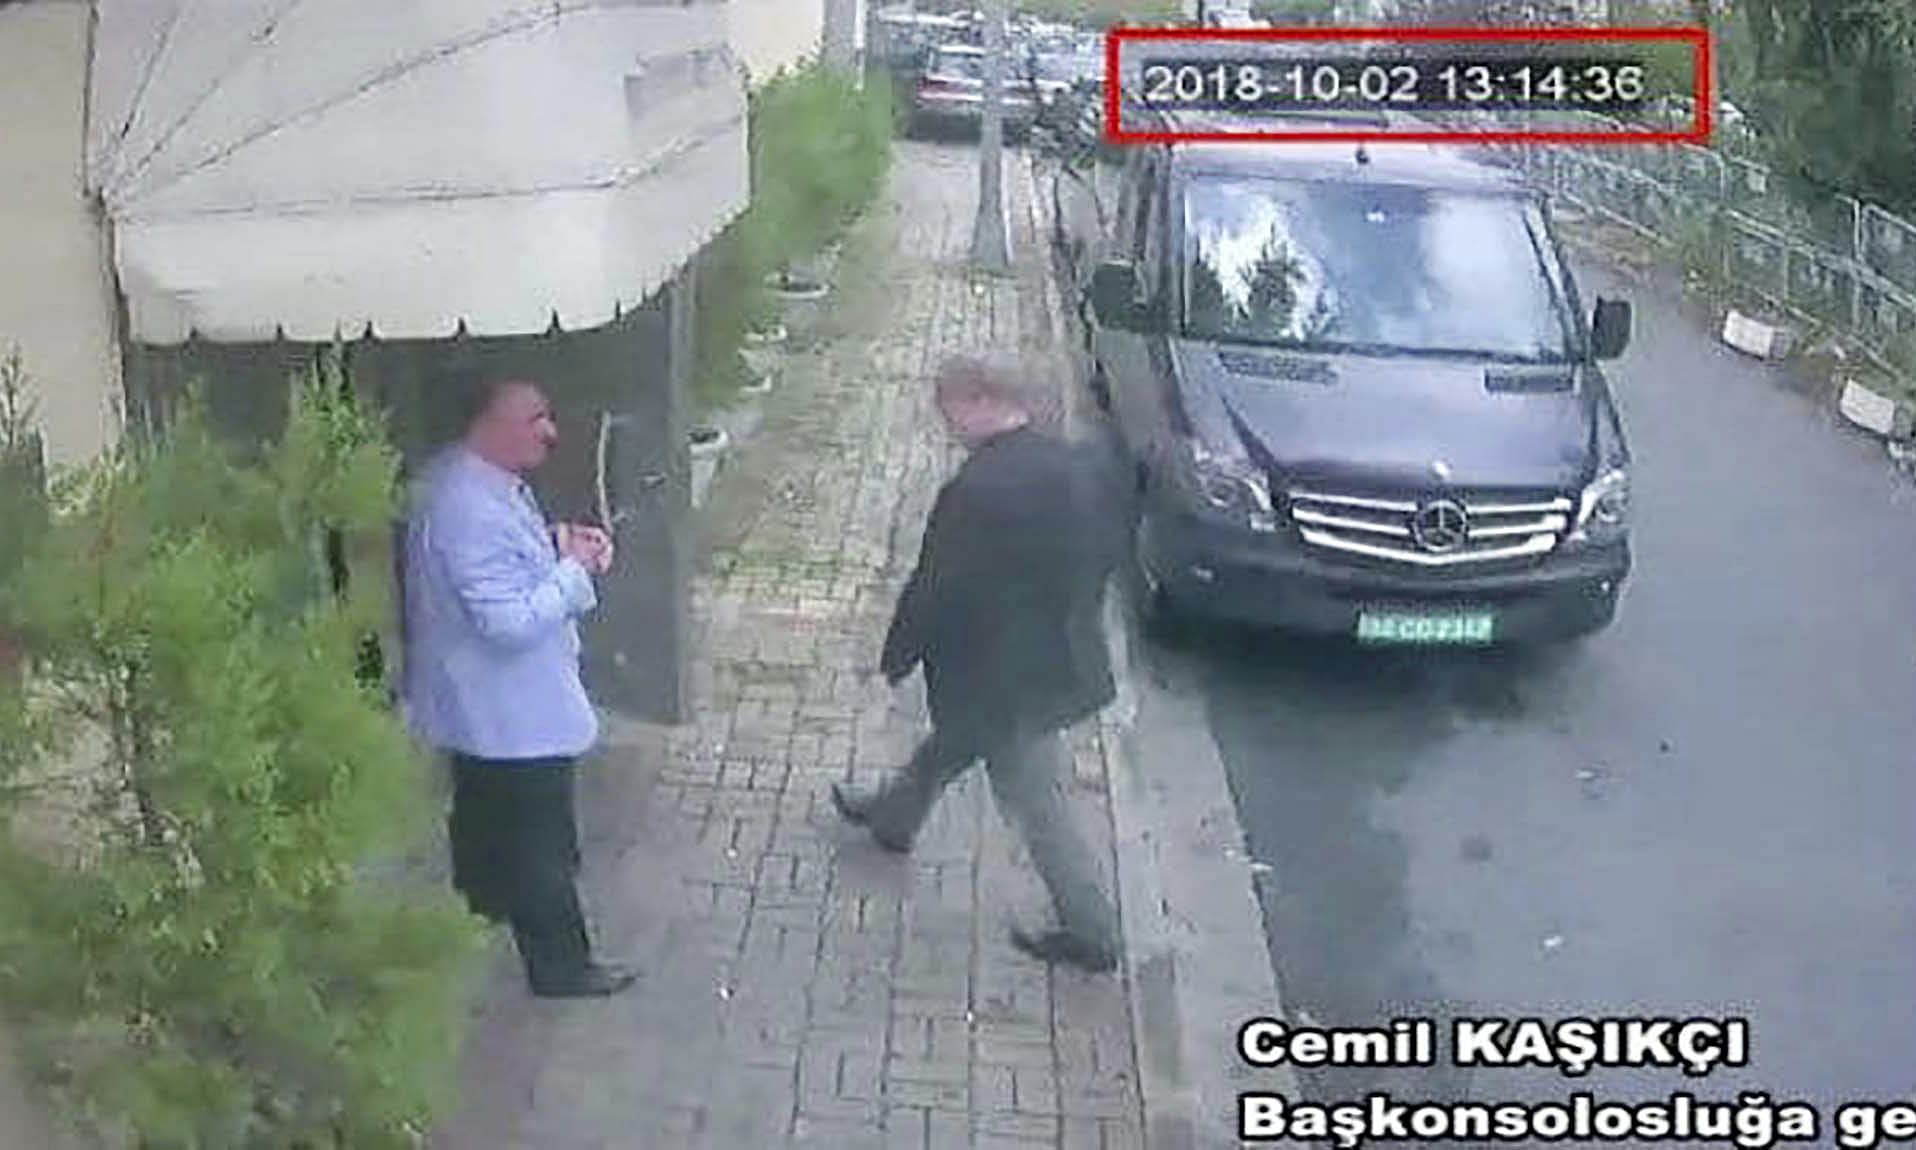 Turkey to search Saudi Consulate for missing journalist Jamal Khashoggi